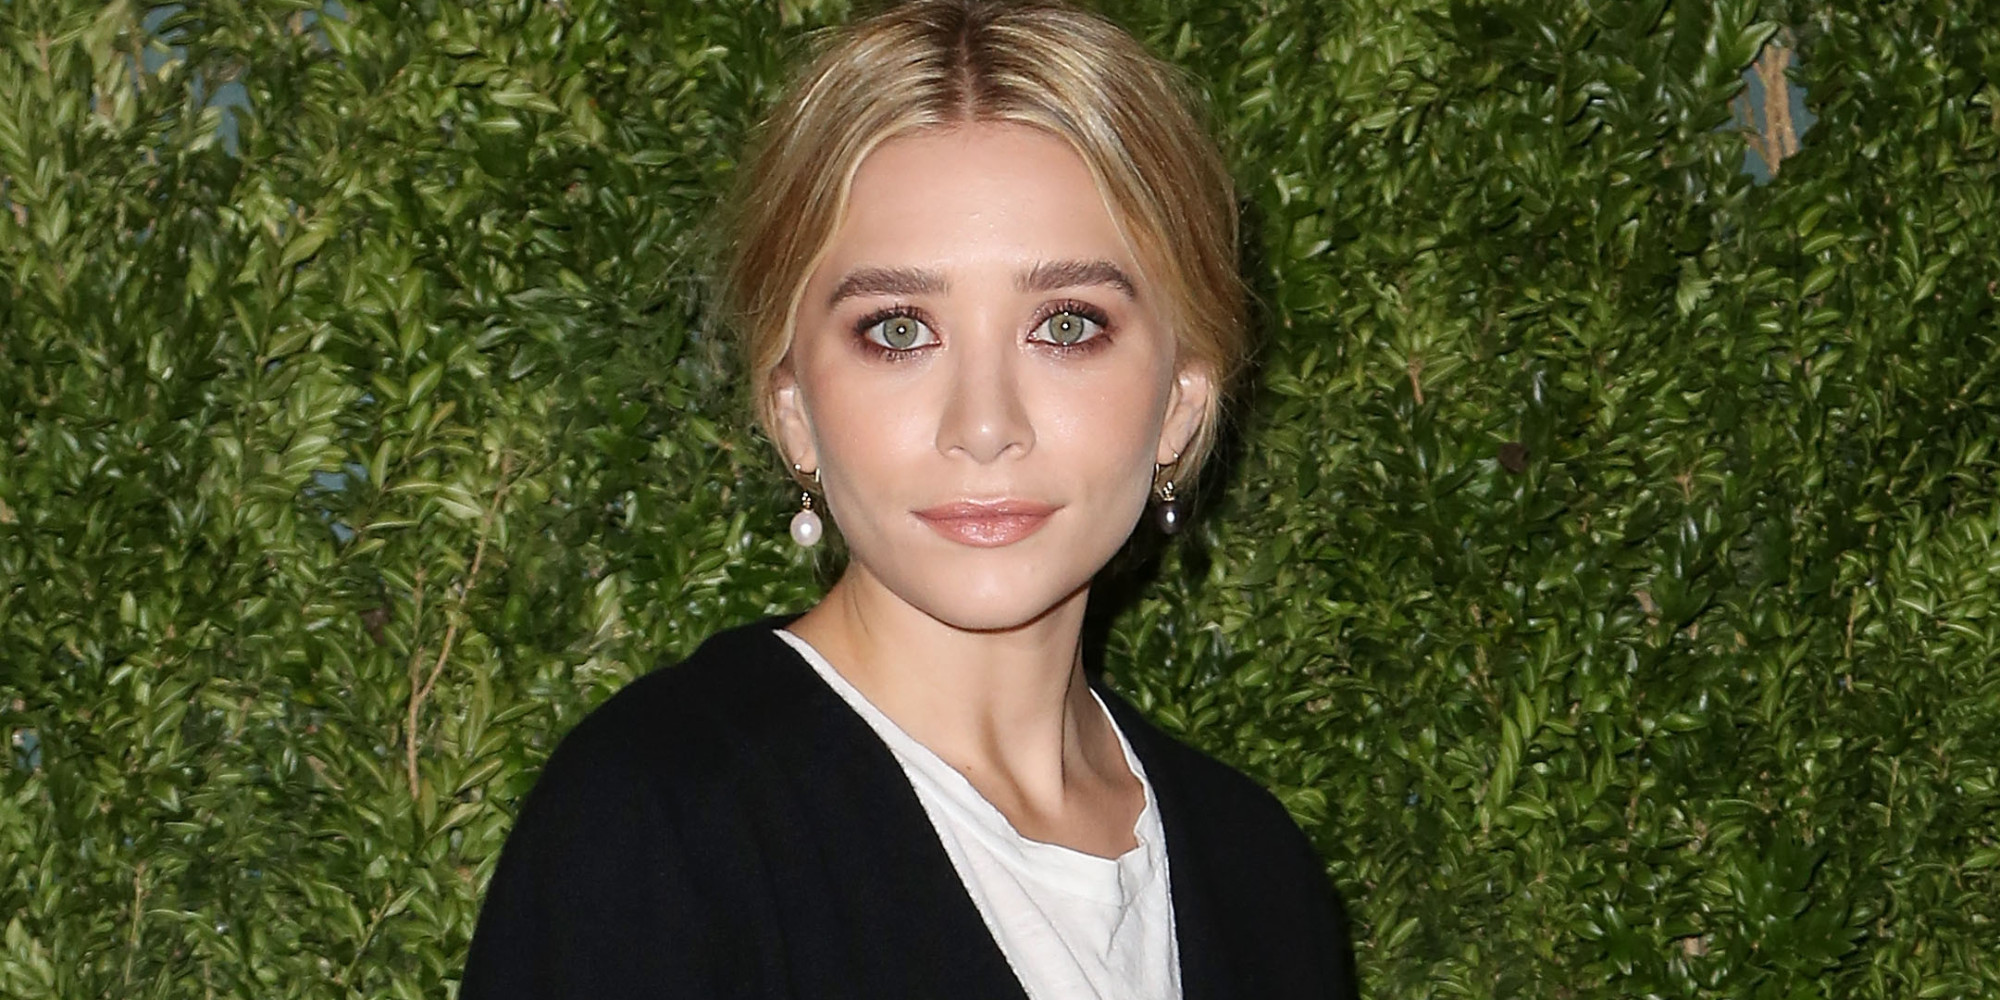 Ashley Olsen born June 13, 1986 (age 32) nudes (93 photos) Sexy, Snapchat, see through